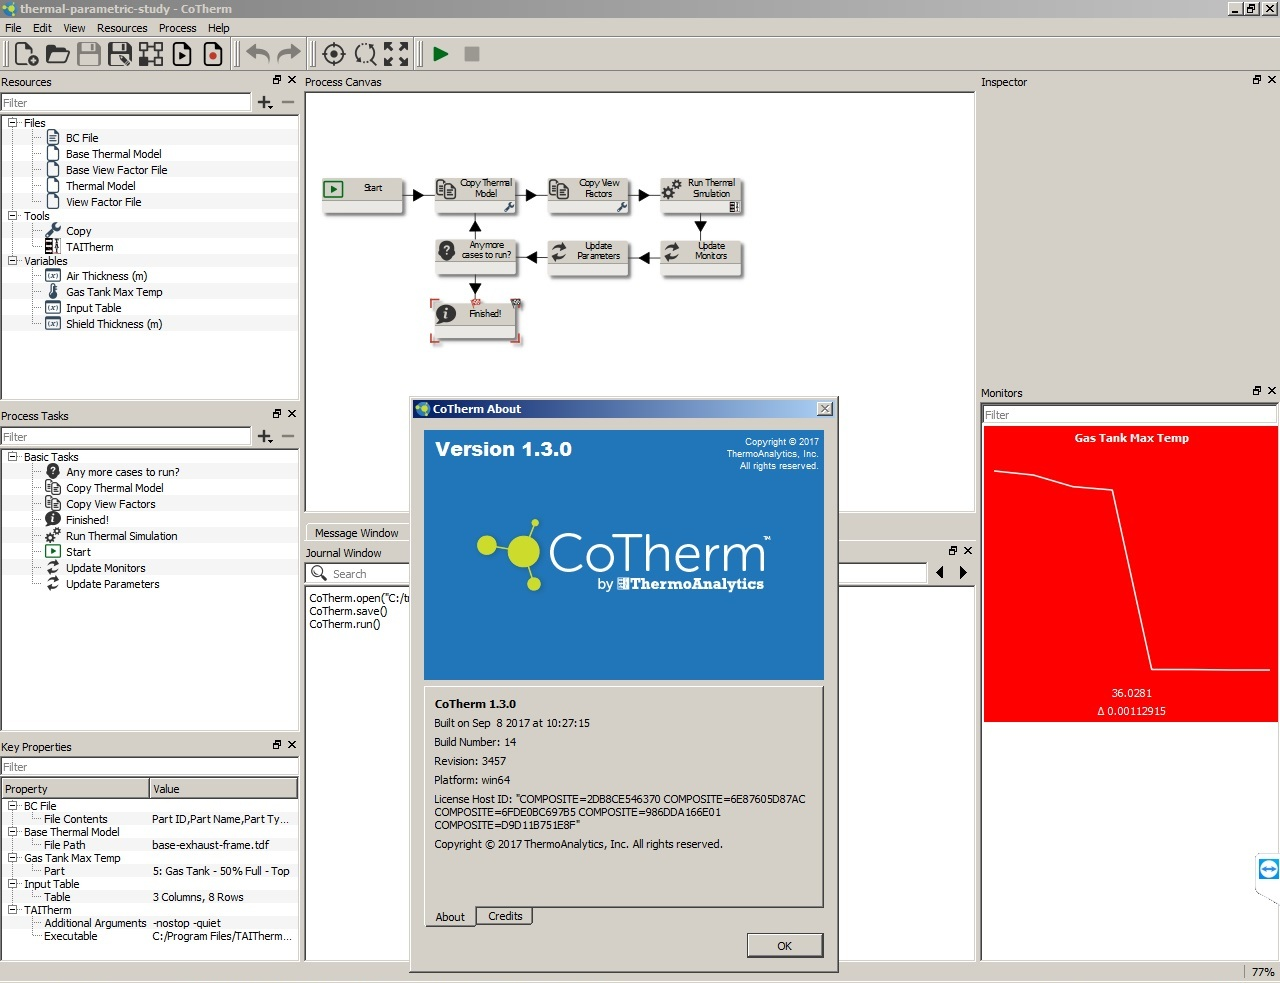 Working with ThermoAnalytics CoTherm 1.3.0 full license